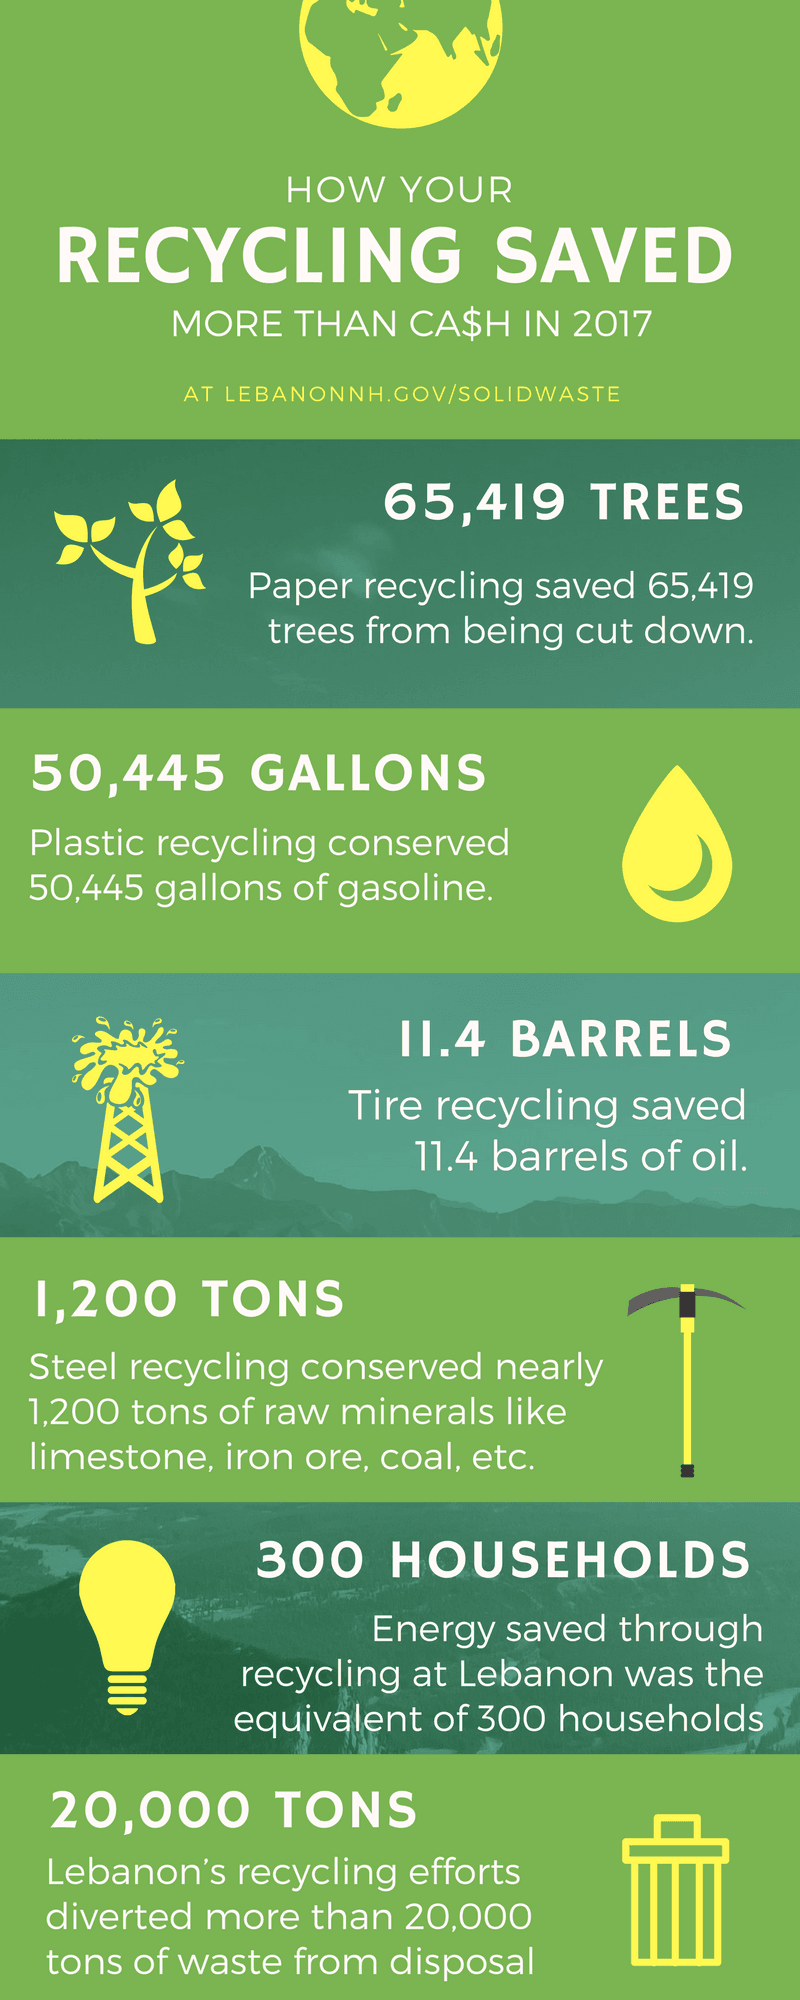 Recycling saves more than cash infographic